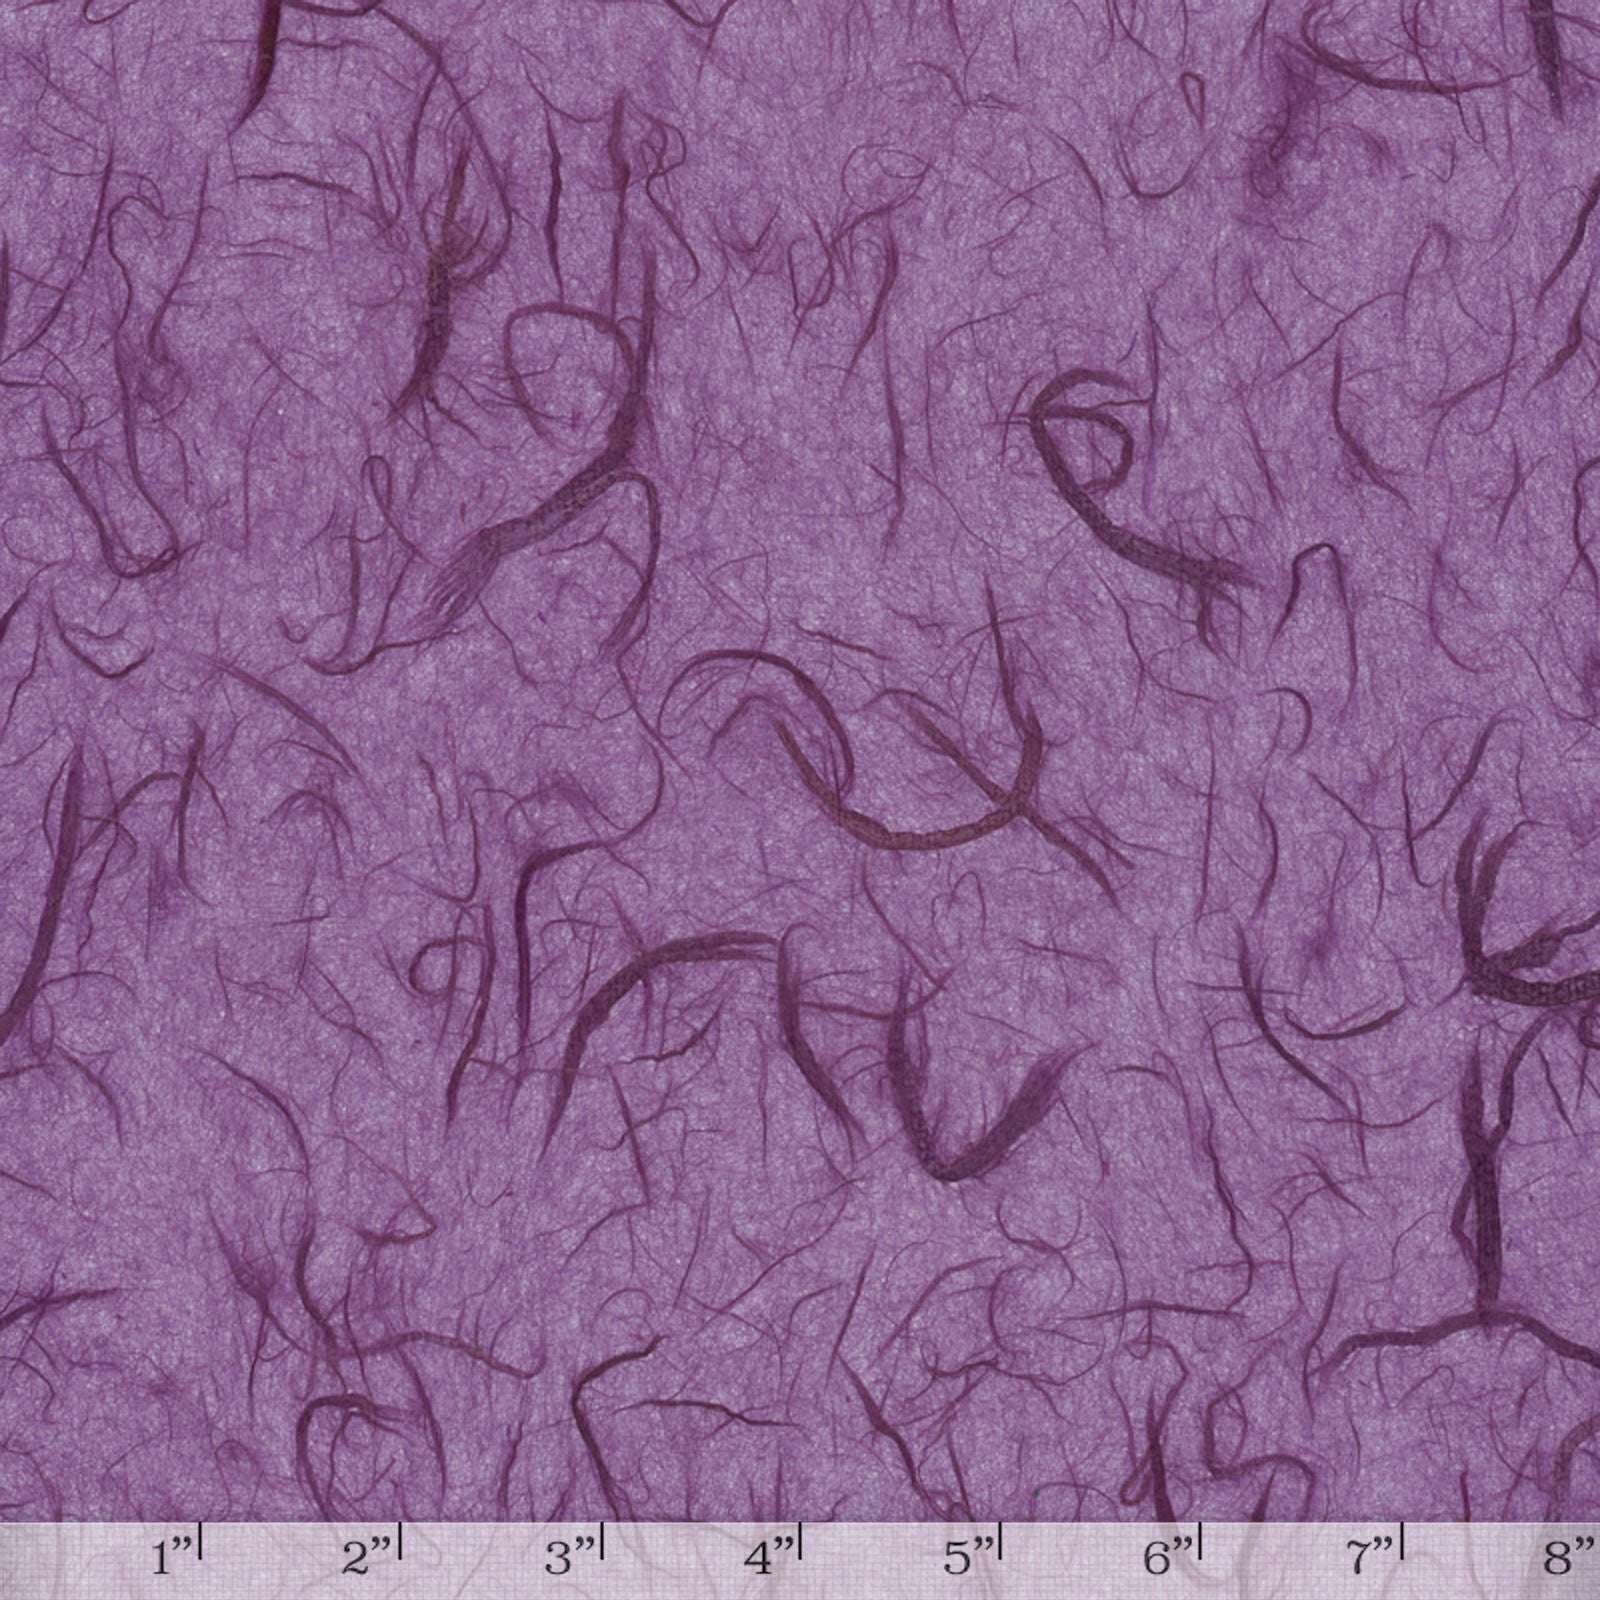 Unryu Tissue Purple - Full Sheet